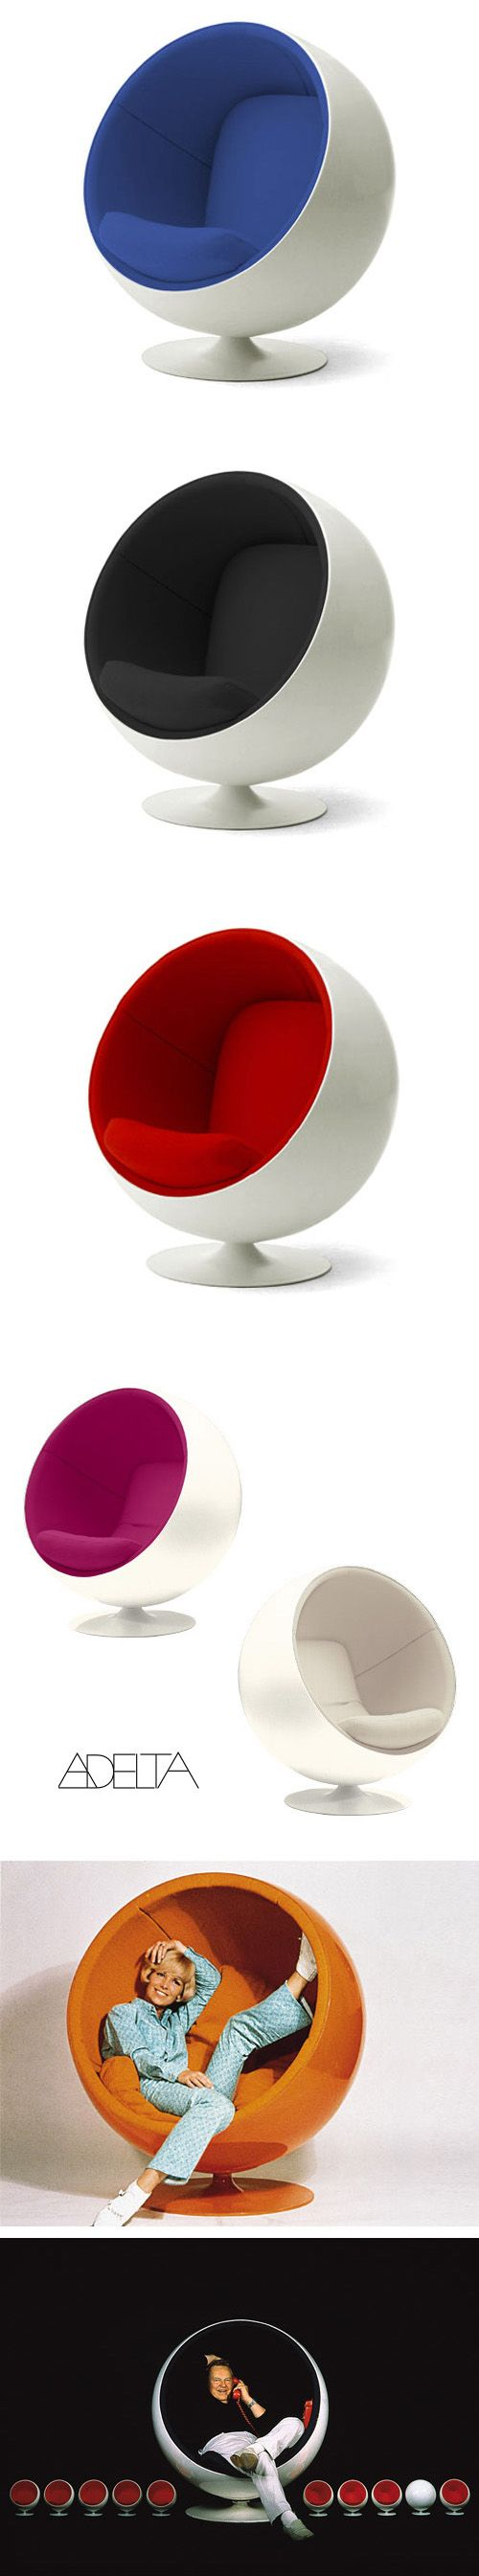 Perfect Eero Aarnio: Modern Design Space Age Ball Chair Click Image For Additional  Pictures Code: